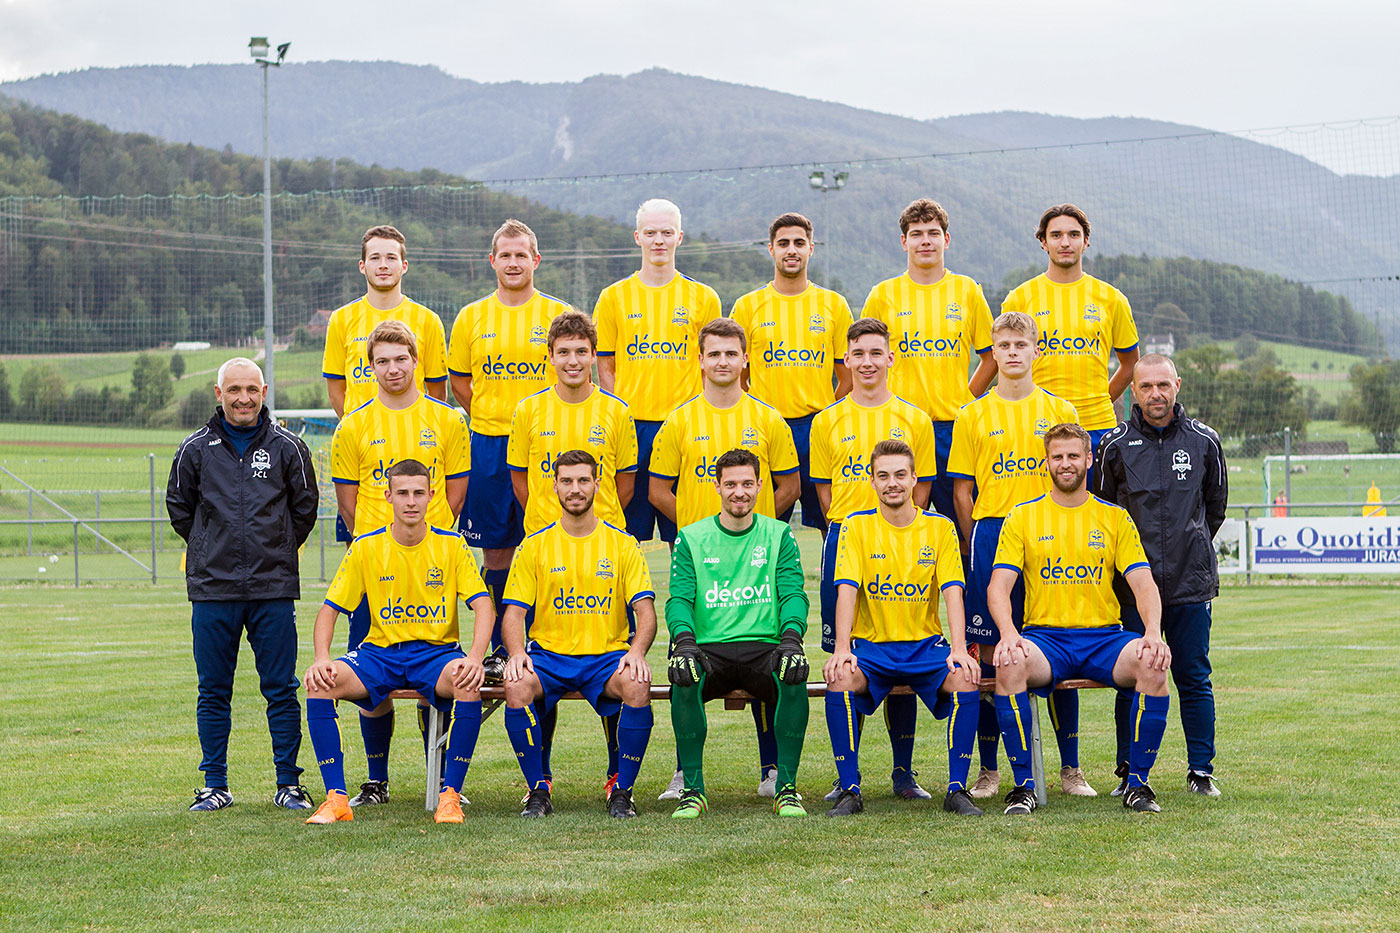 FC Vicques I - Saison 2019-2020 - 3e ligue